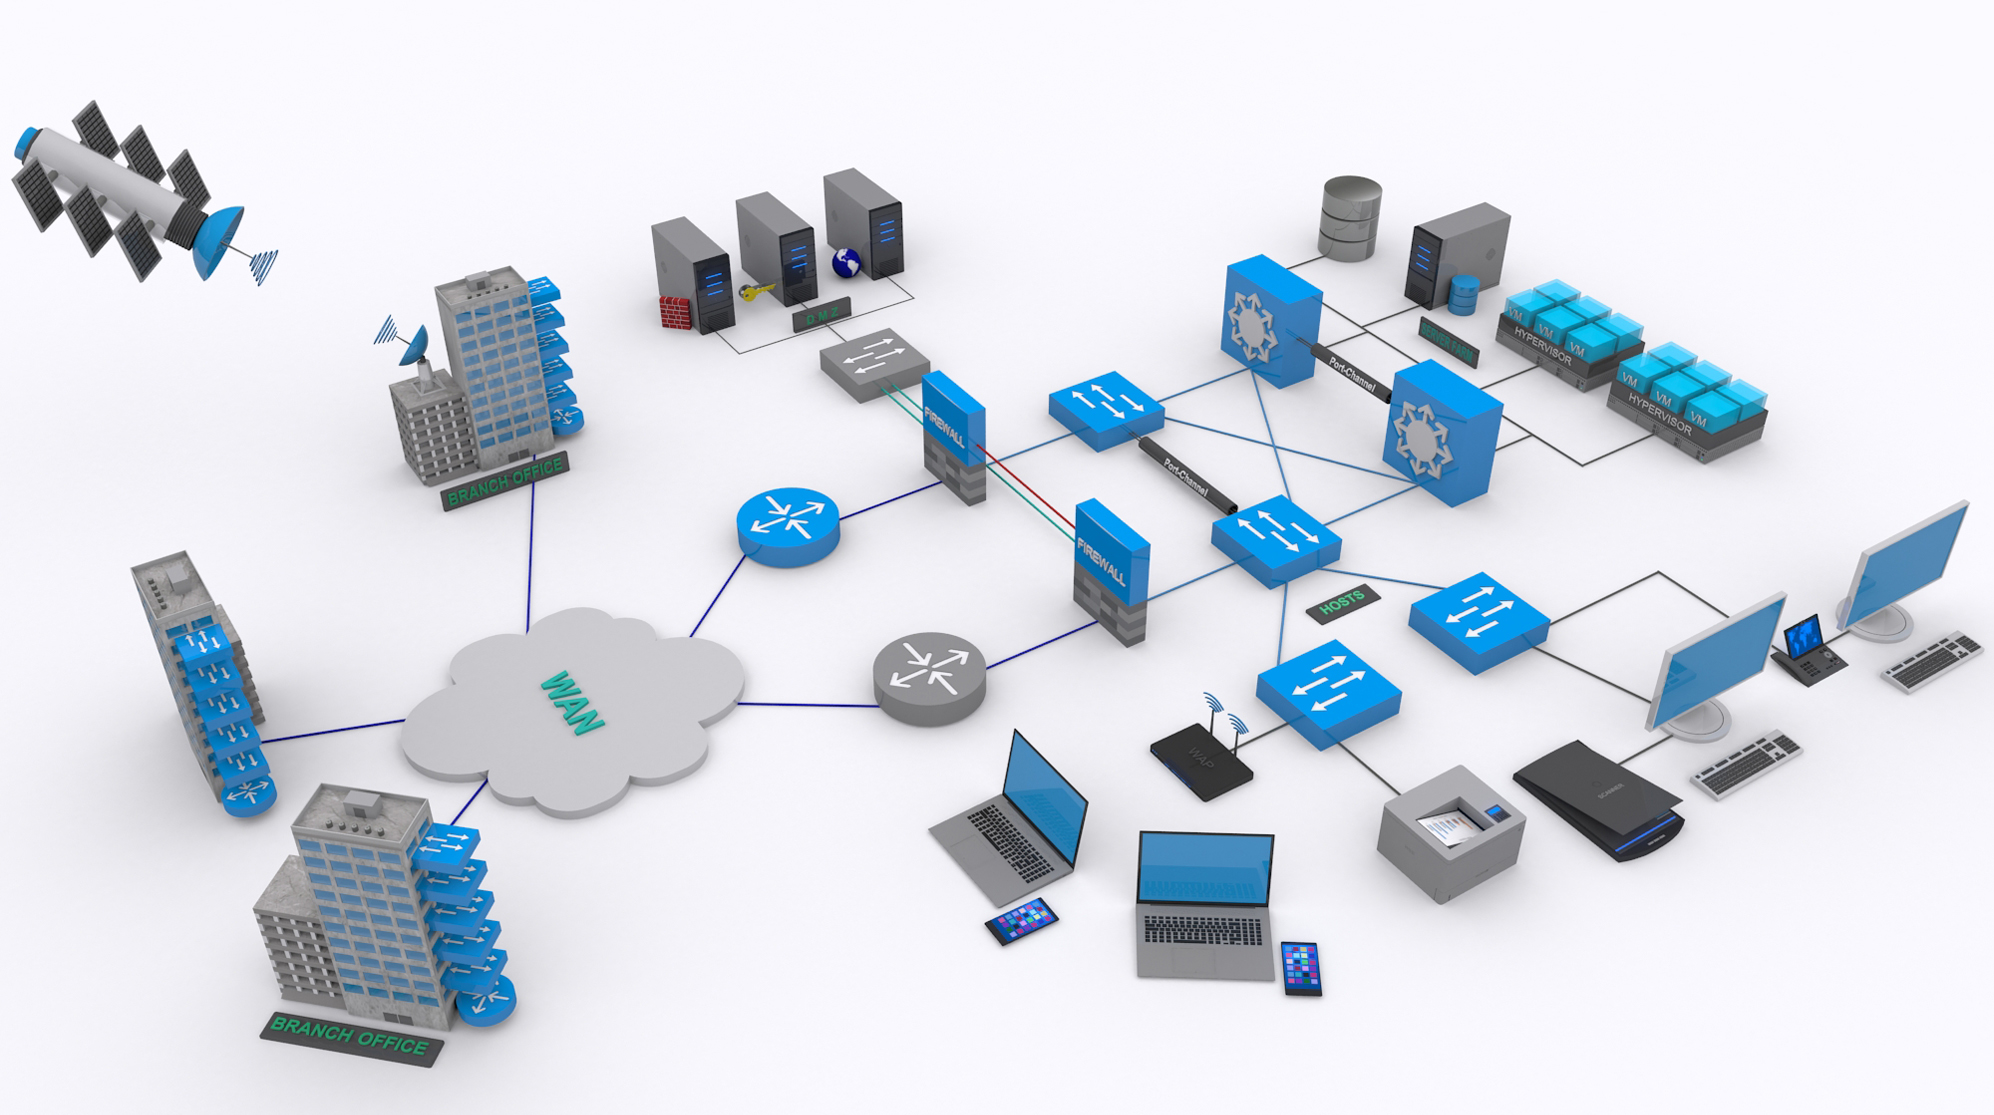 3d Networking We Make Your Network 3d